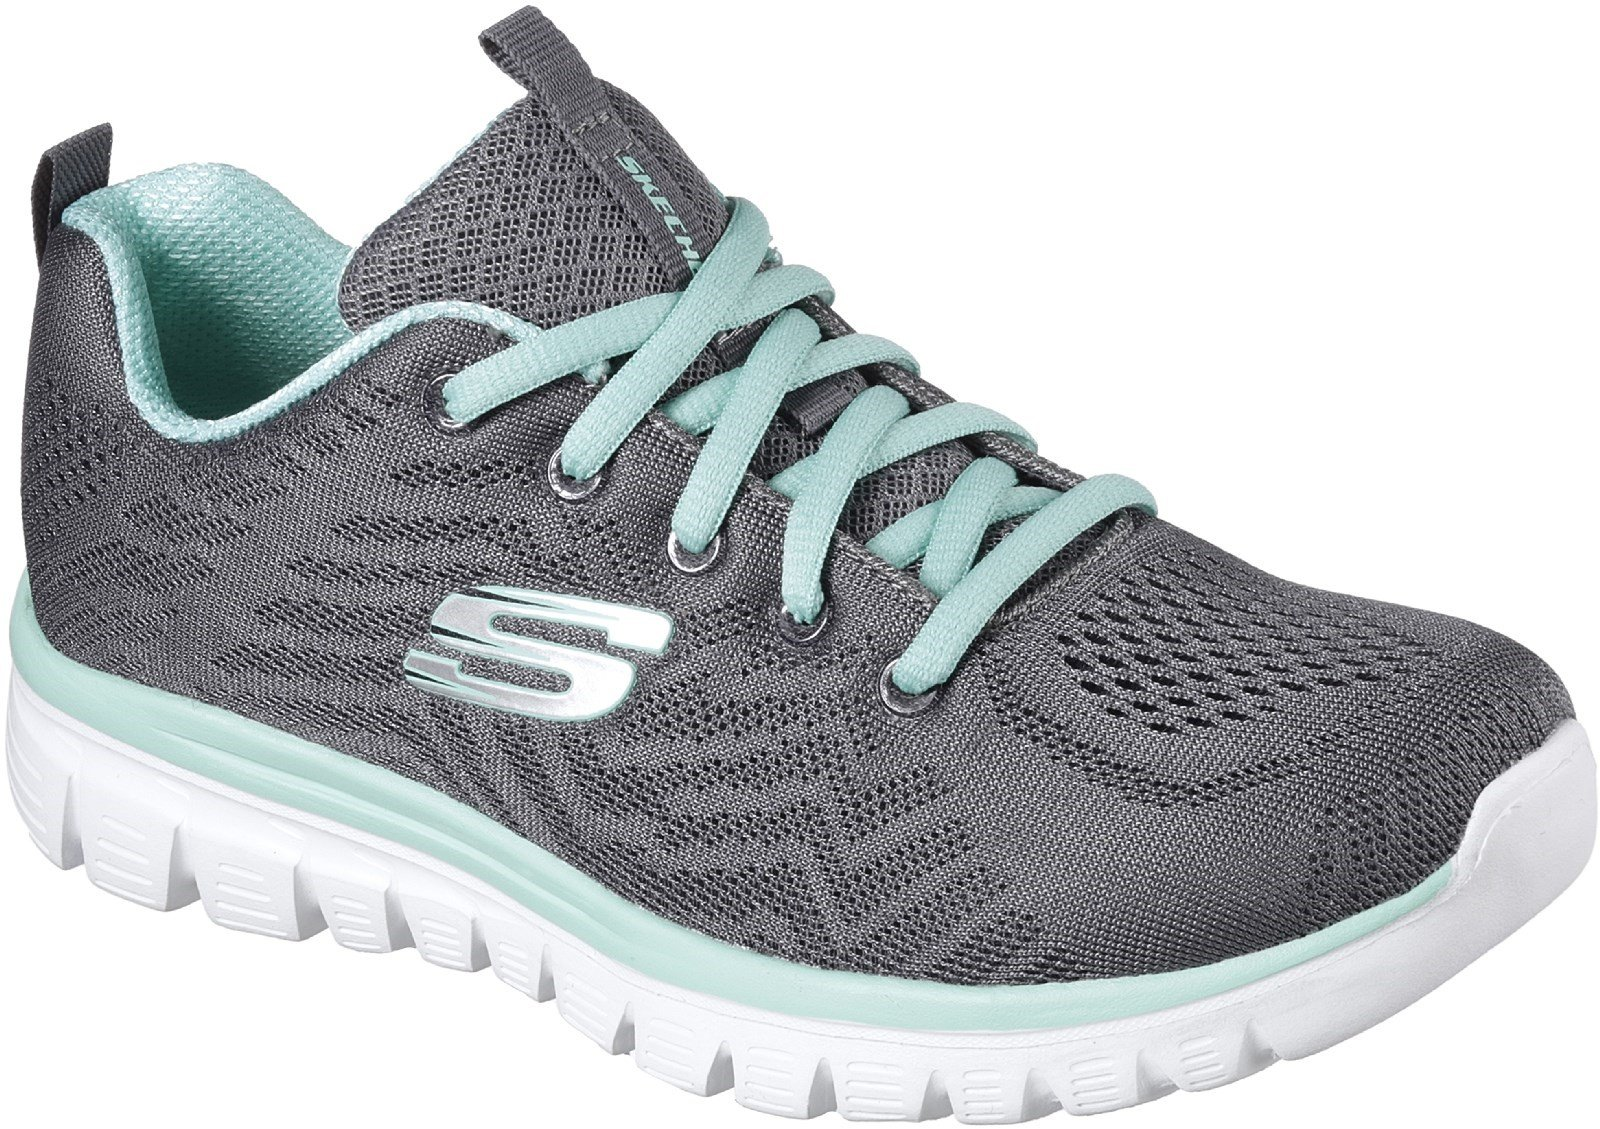 Skechers Women's Graceful Get Connected Sports Shoe Charcoal 30706 - Charcoal 3